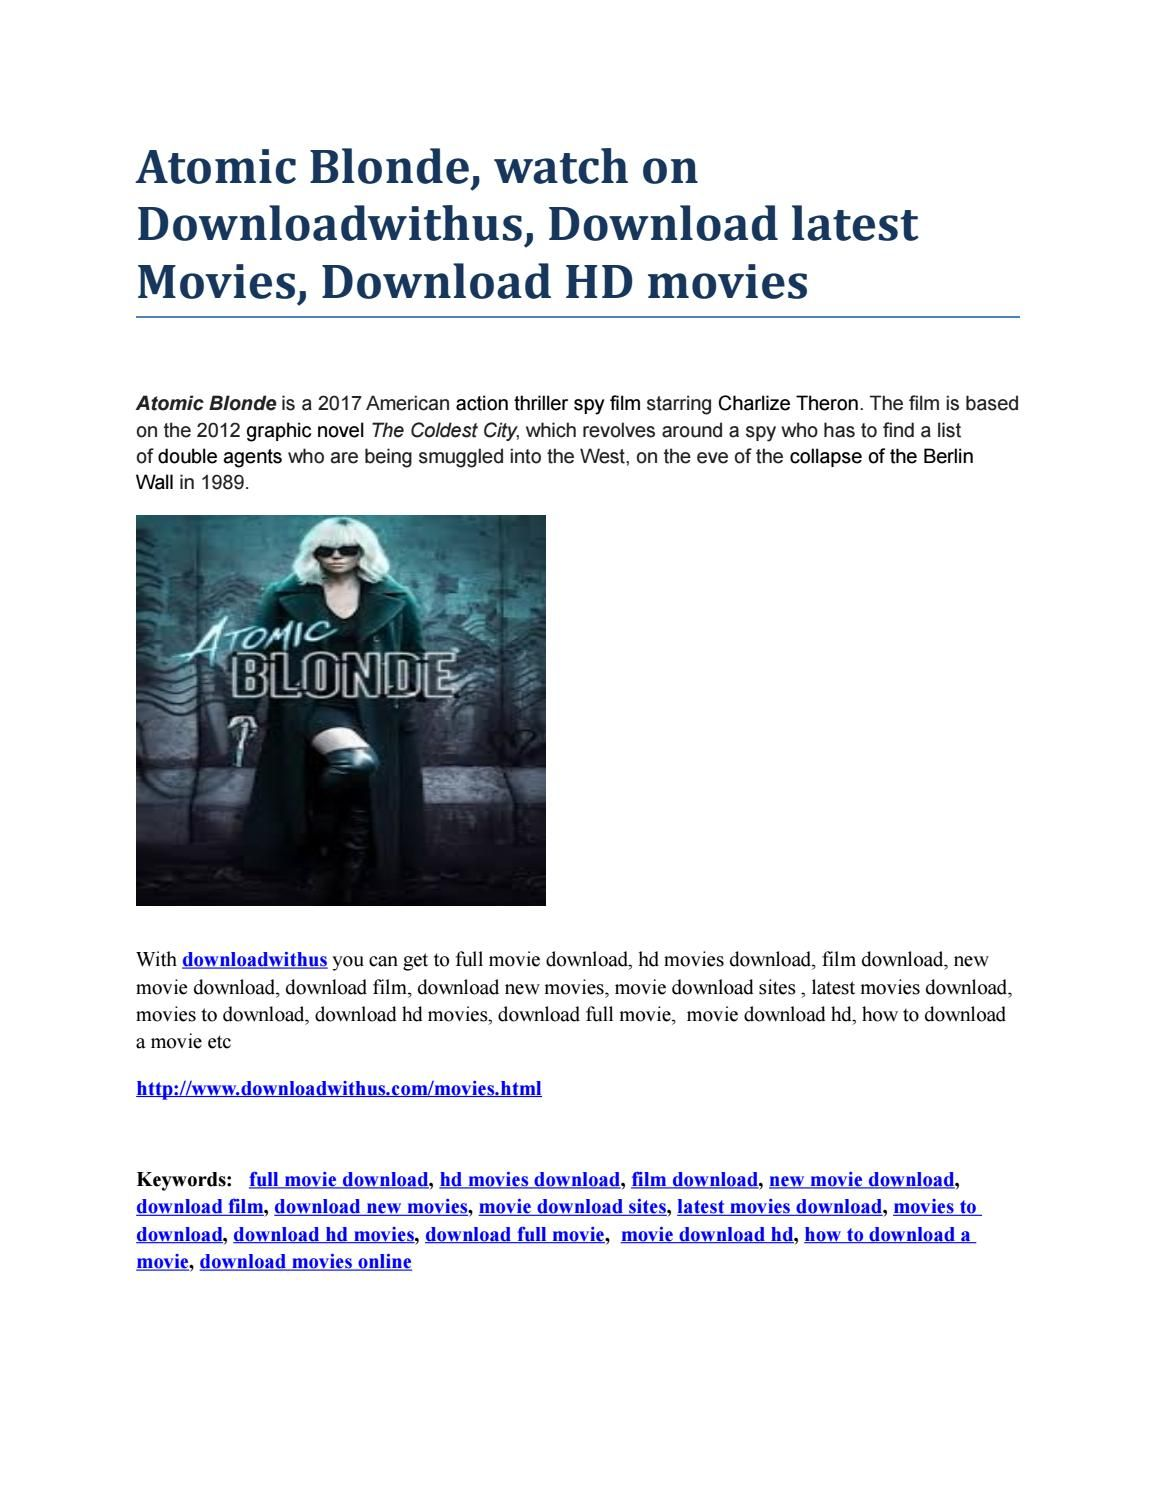 atomic blonde, watch on downloadwithus, download latest movies